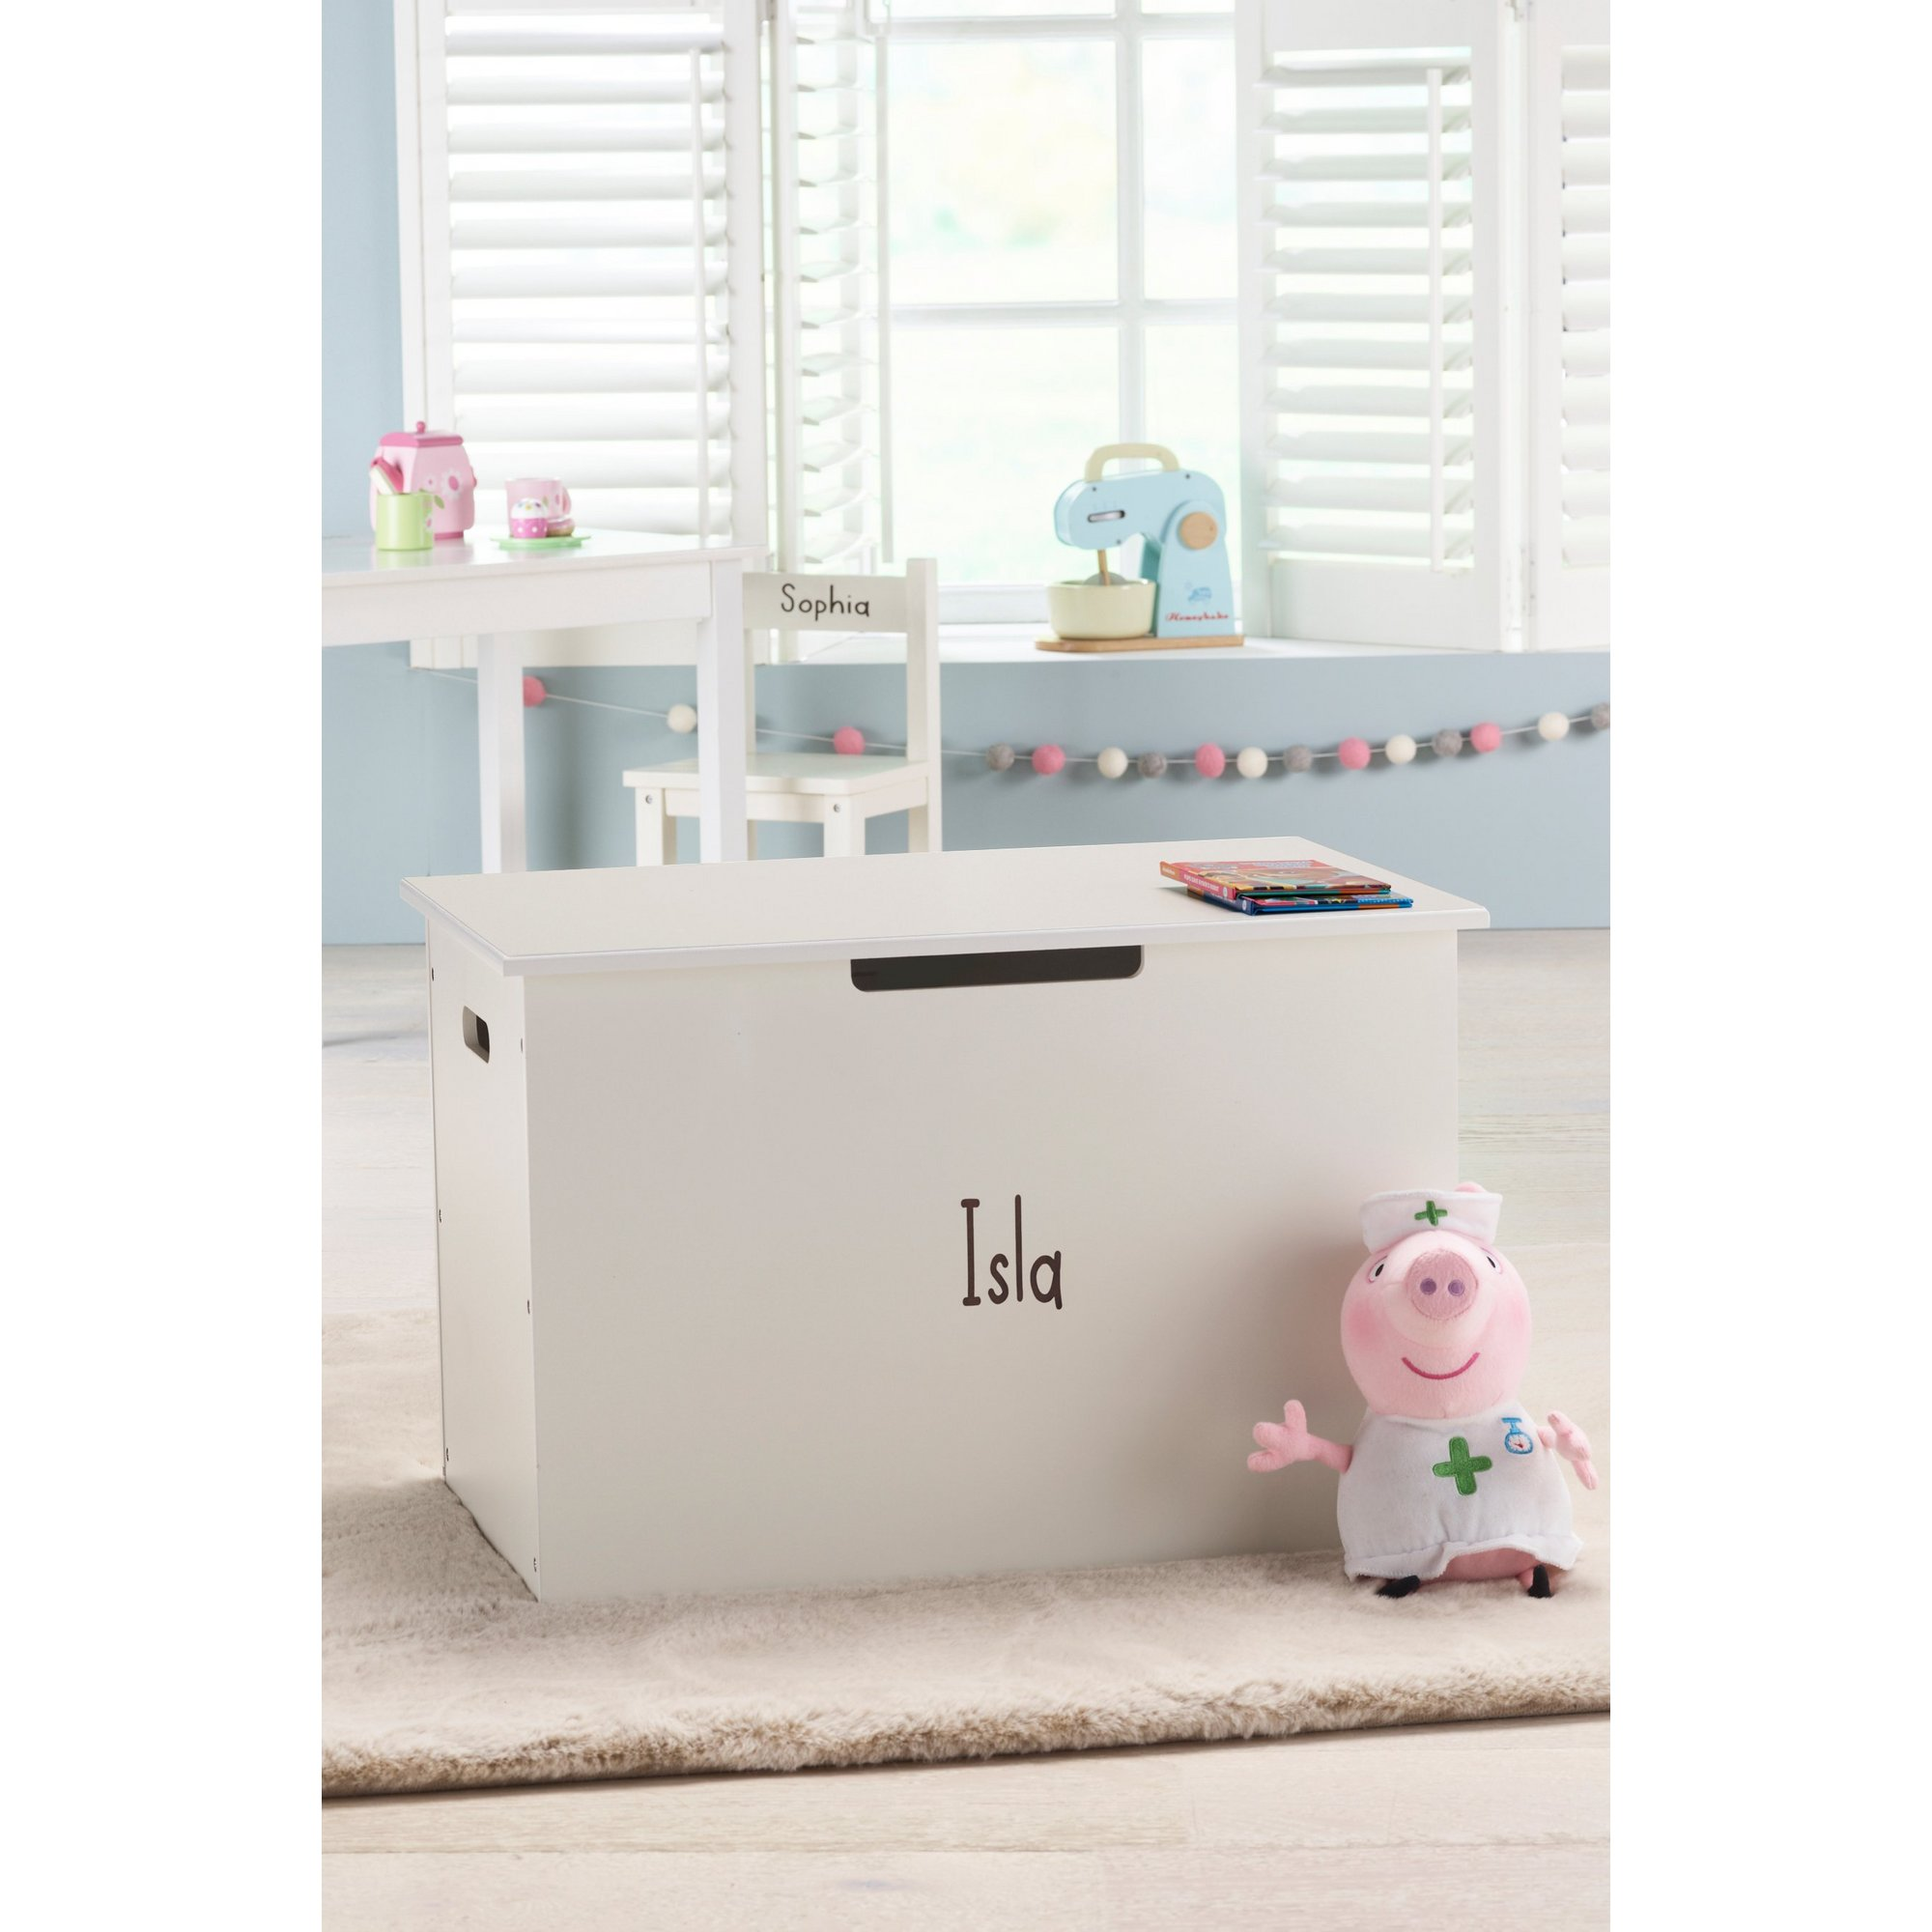 Image of Personalised Panelled Wooden Toy Chest with Hinged Lid